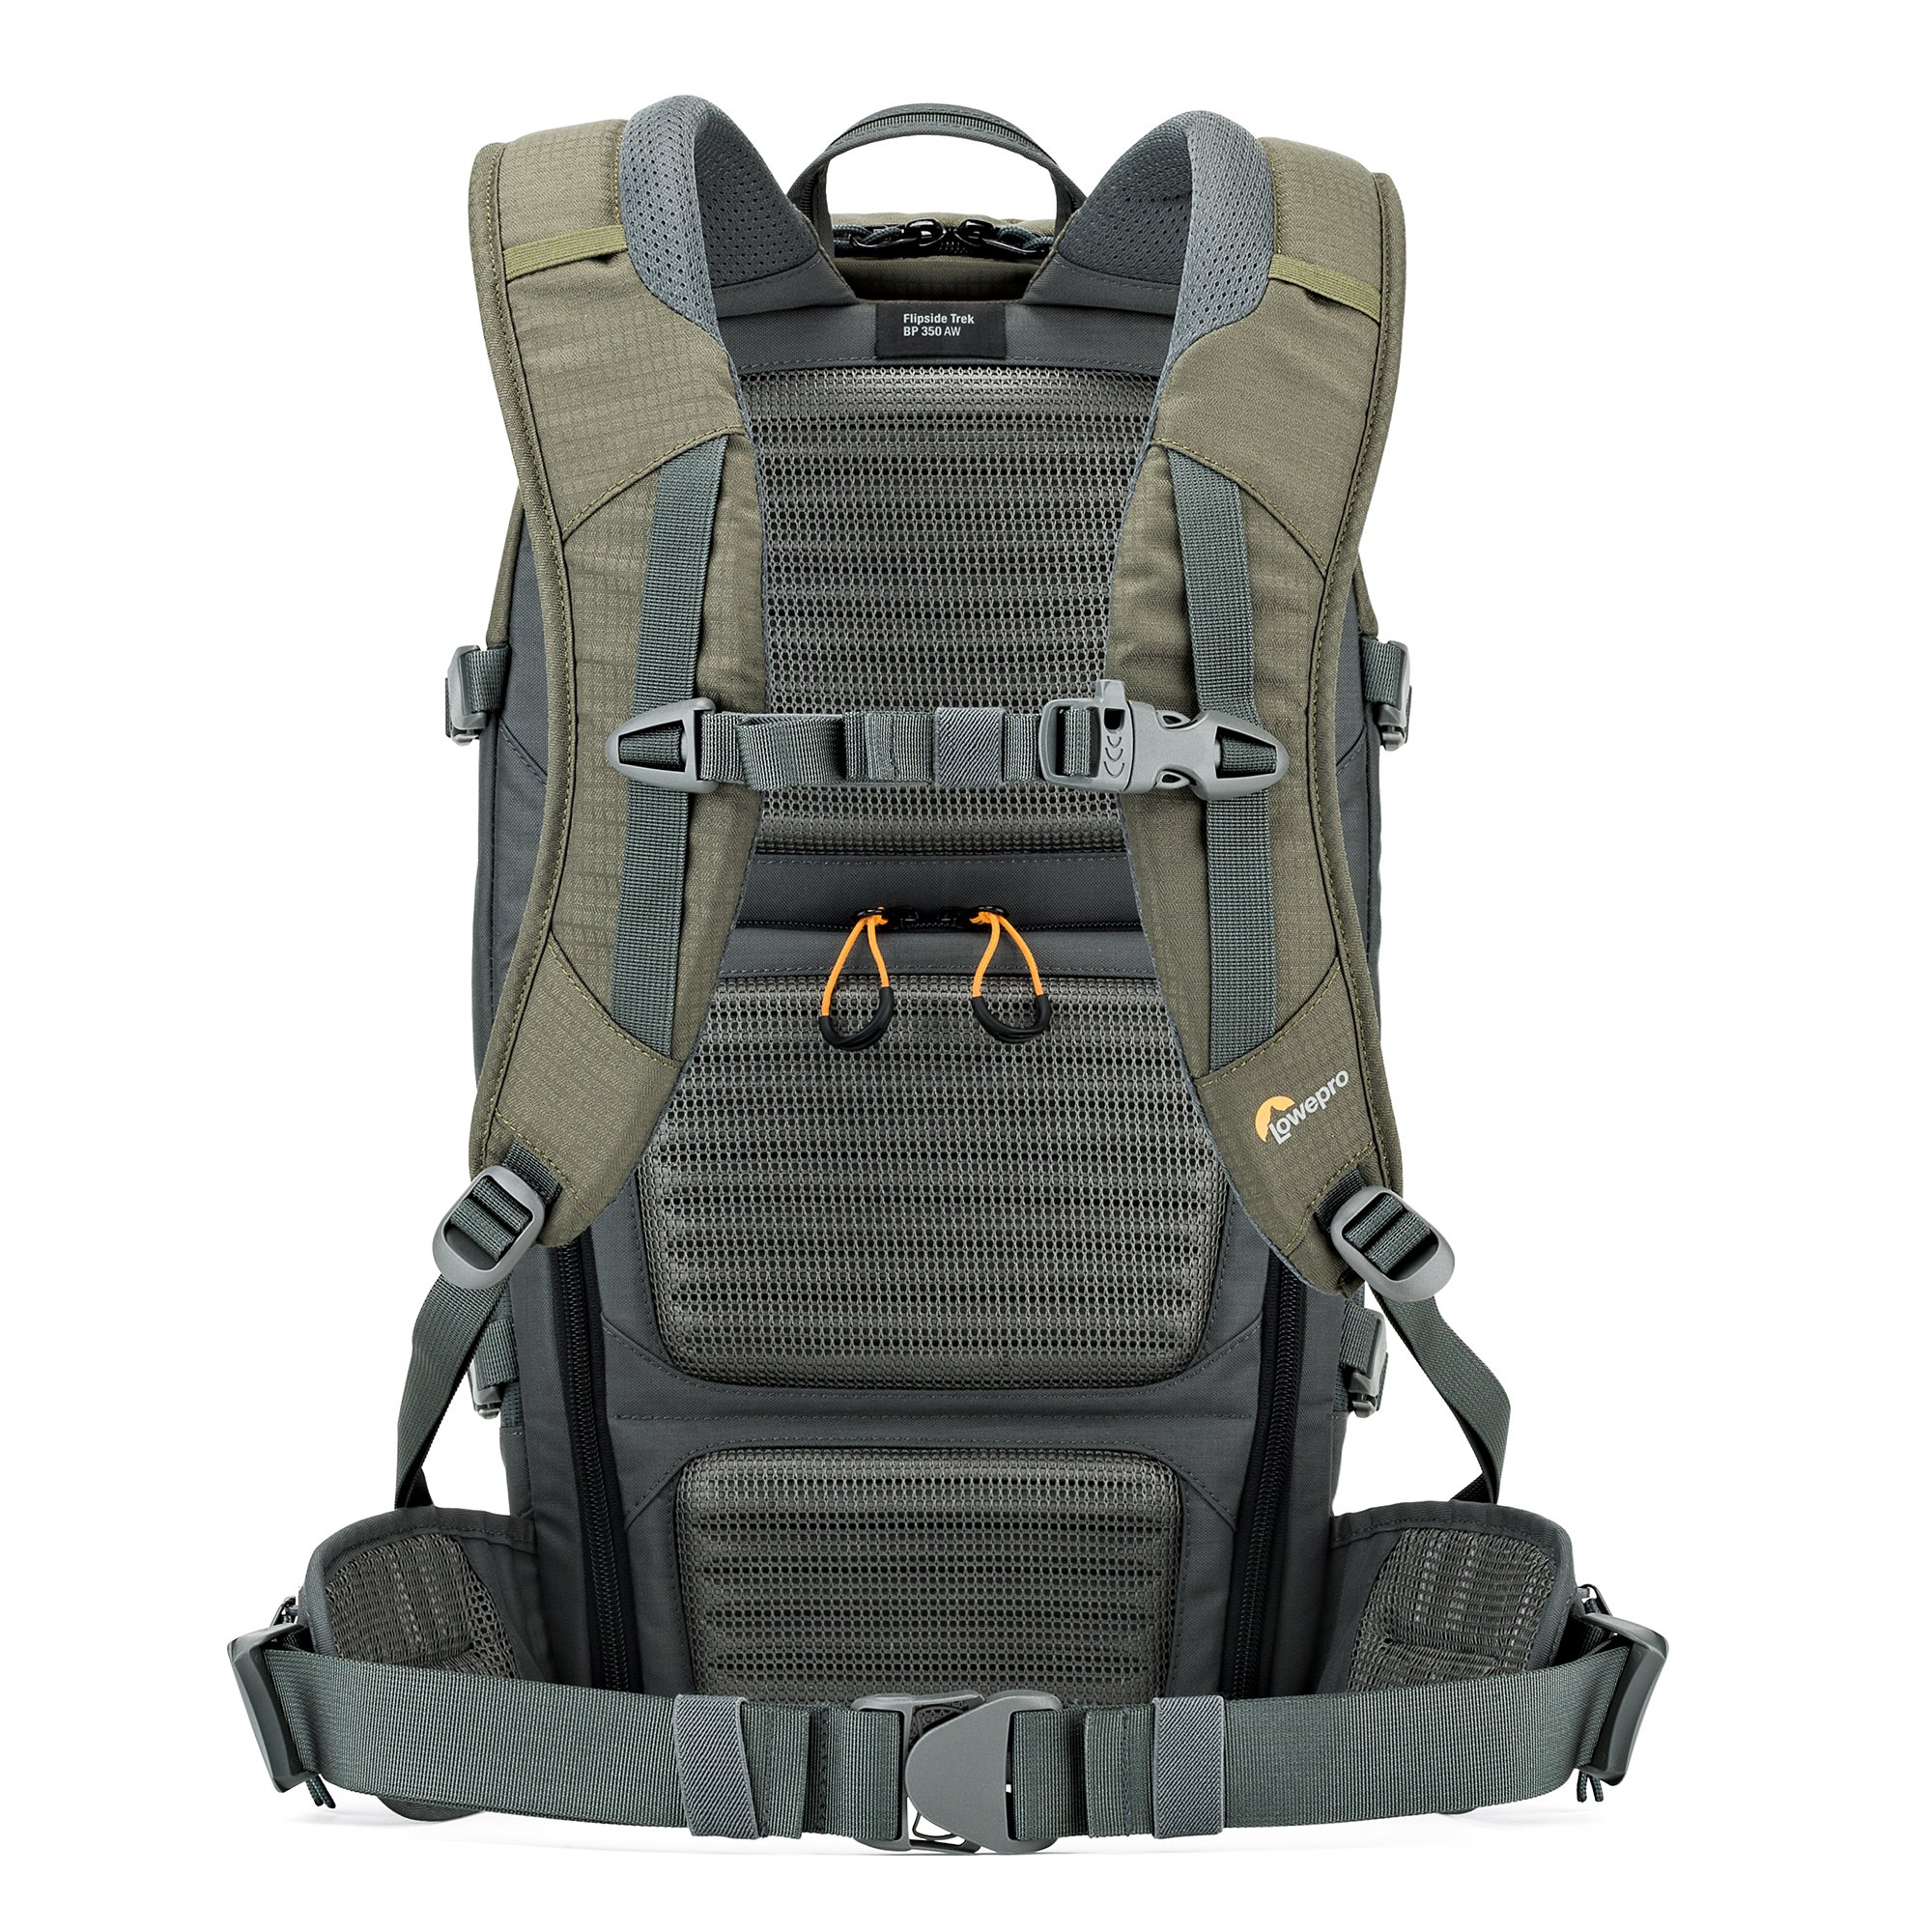 Lowepro Flipside Trek BP 350 AW. Large Outdoor Camera Backpack for DSLR and DJI Mavic Pro Drone w/ Rain Cover and Tablet Pocket by Lowepro (Image #9)